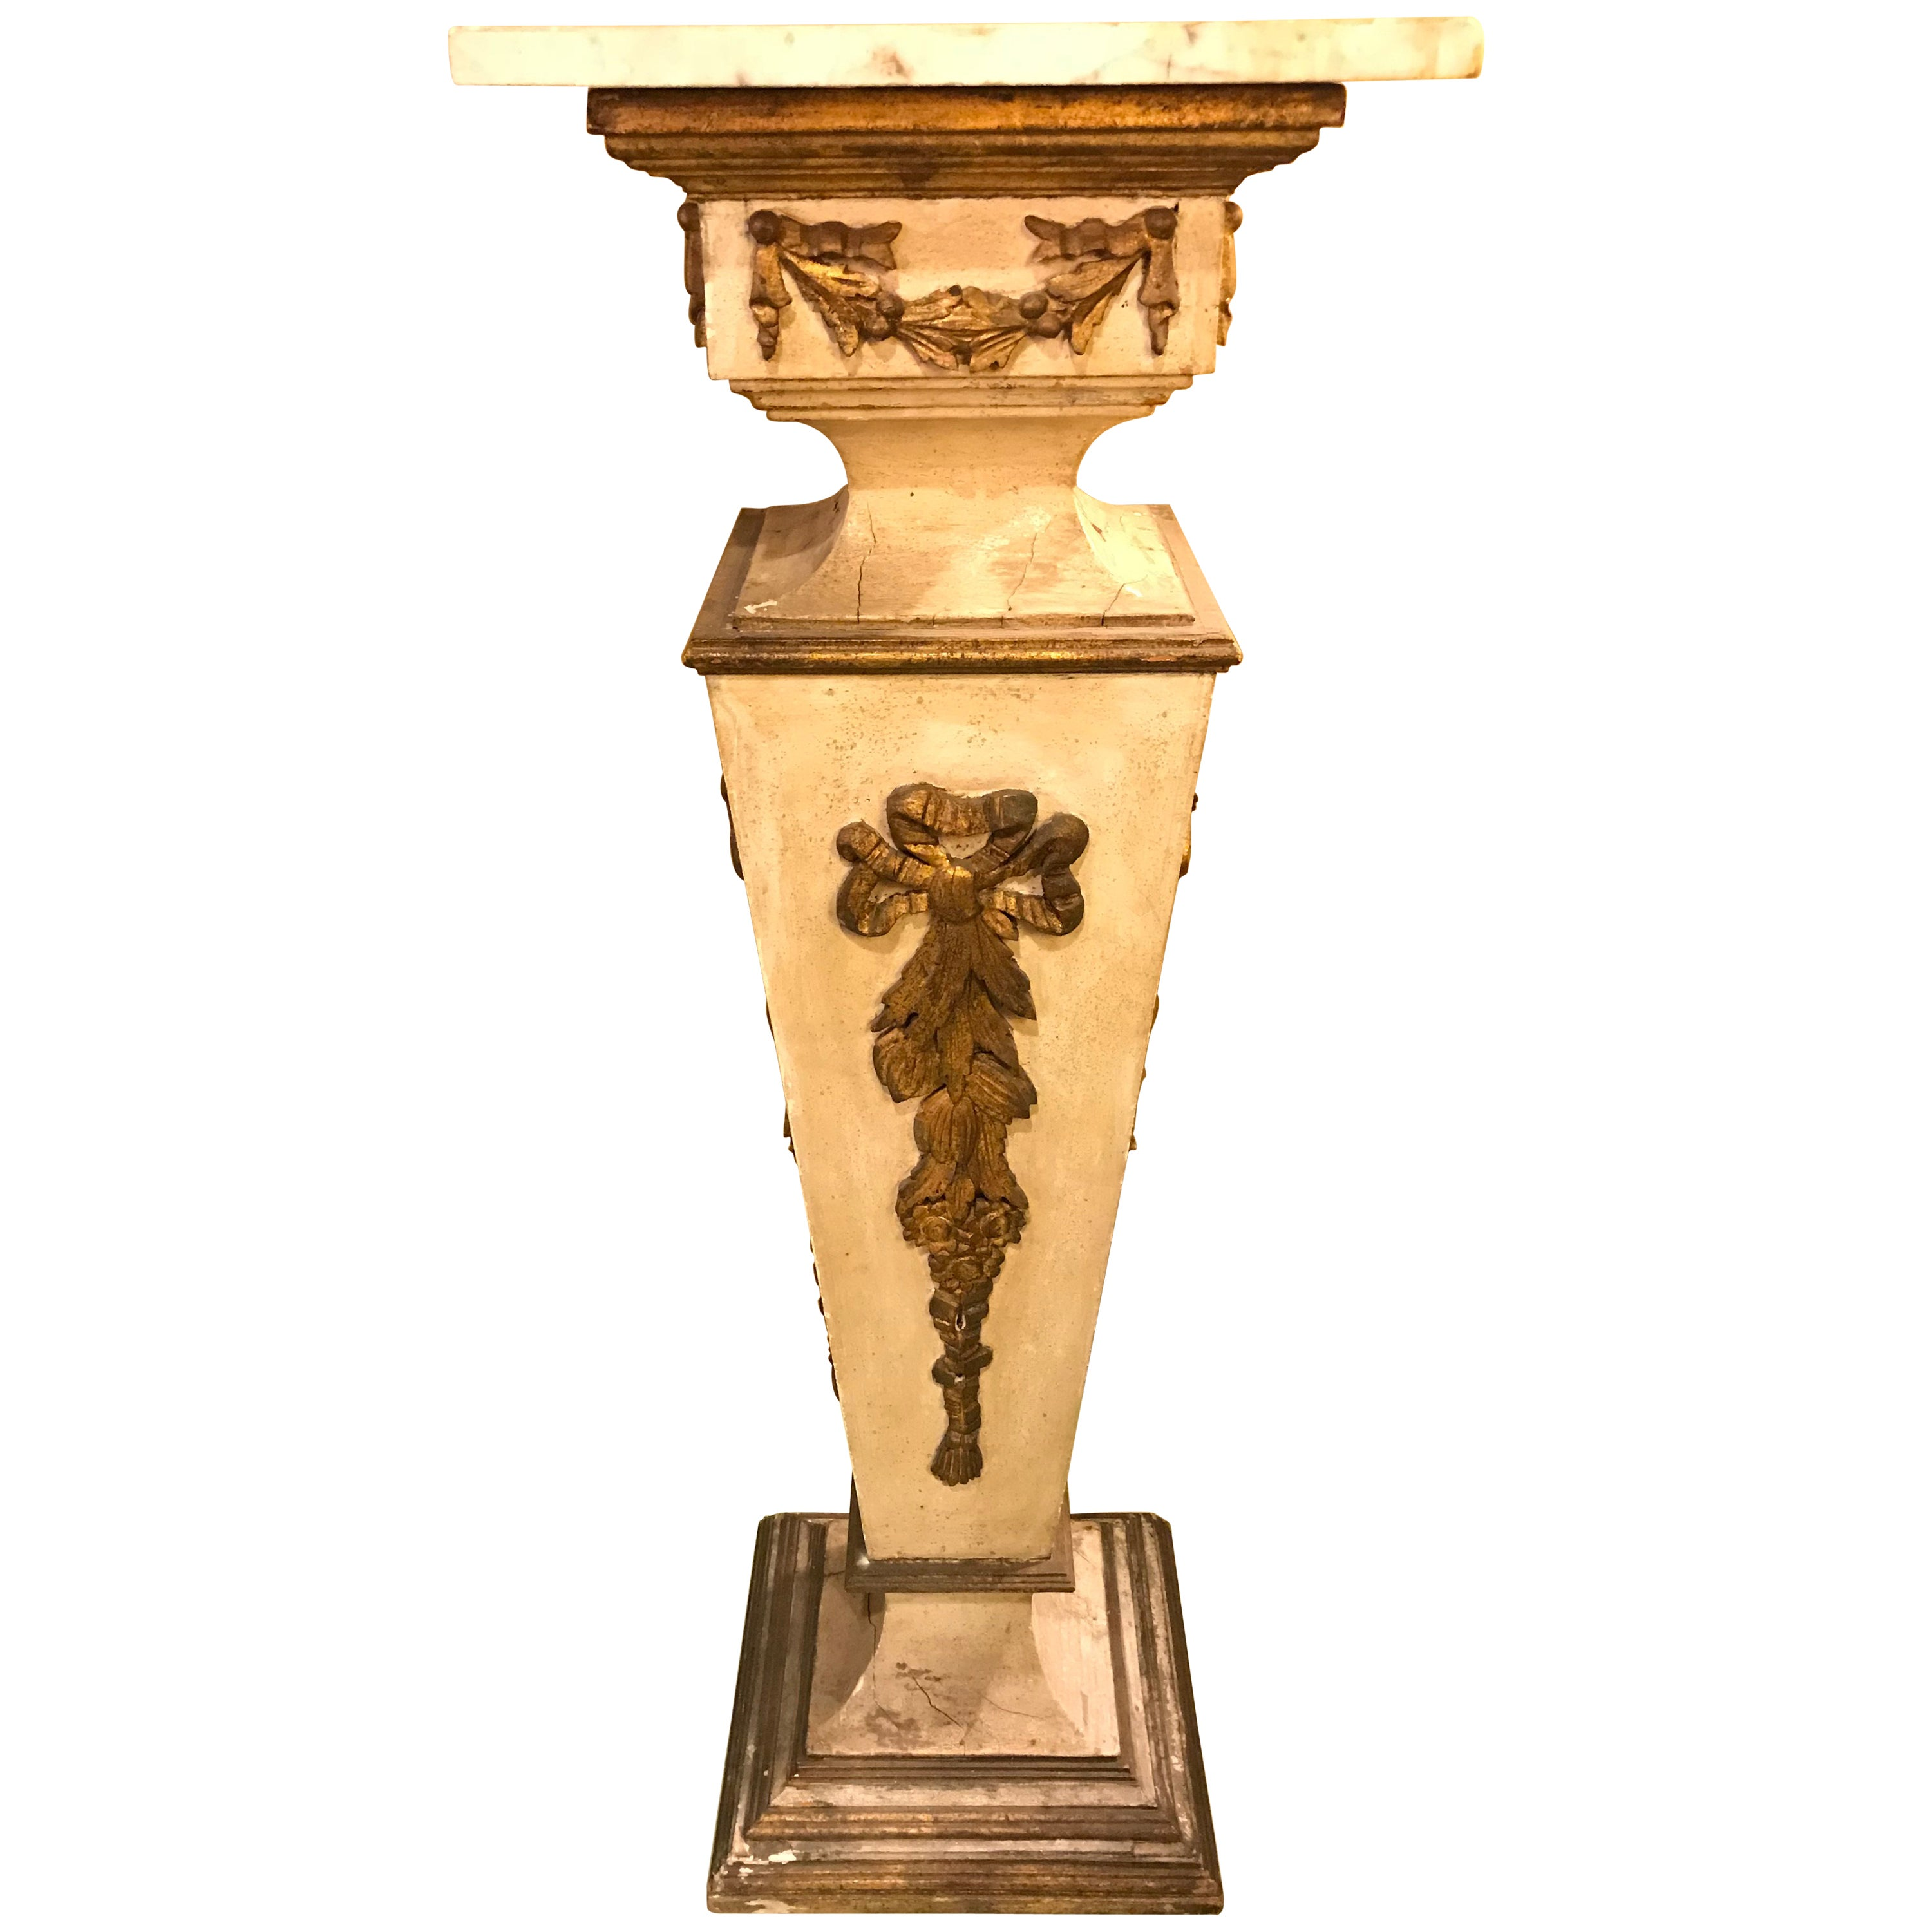 Antique Italian Giltwood and Paint Decorated Pedestal Column, 19th Century